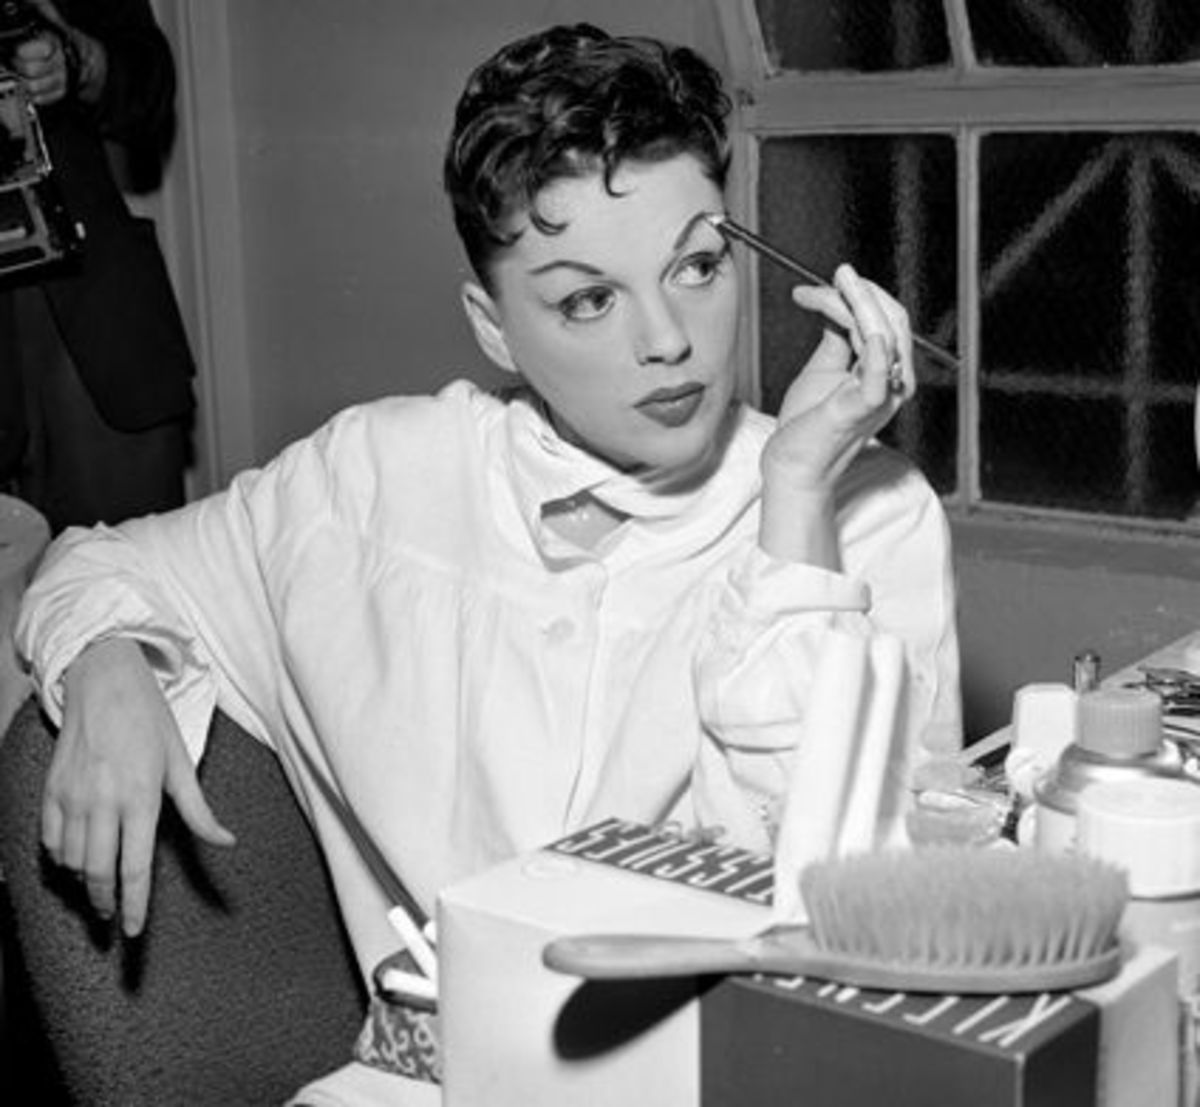 But here's Judy Garland again, with her real face-shape showing.  The well-defined curls are askew, like her slanted eyebrows and ears, giving the impression of an exotic heart shape.